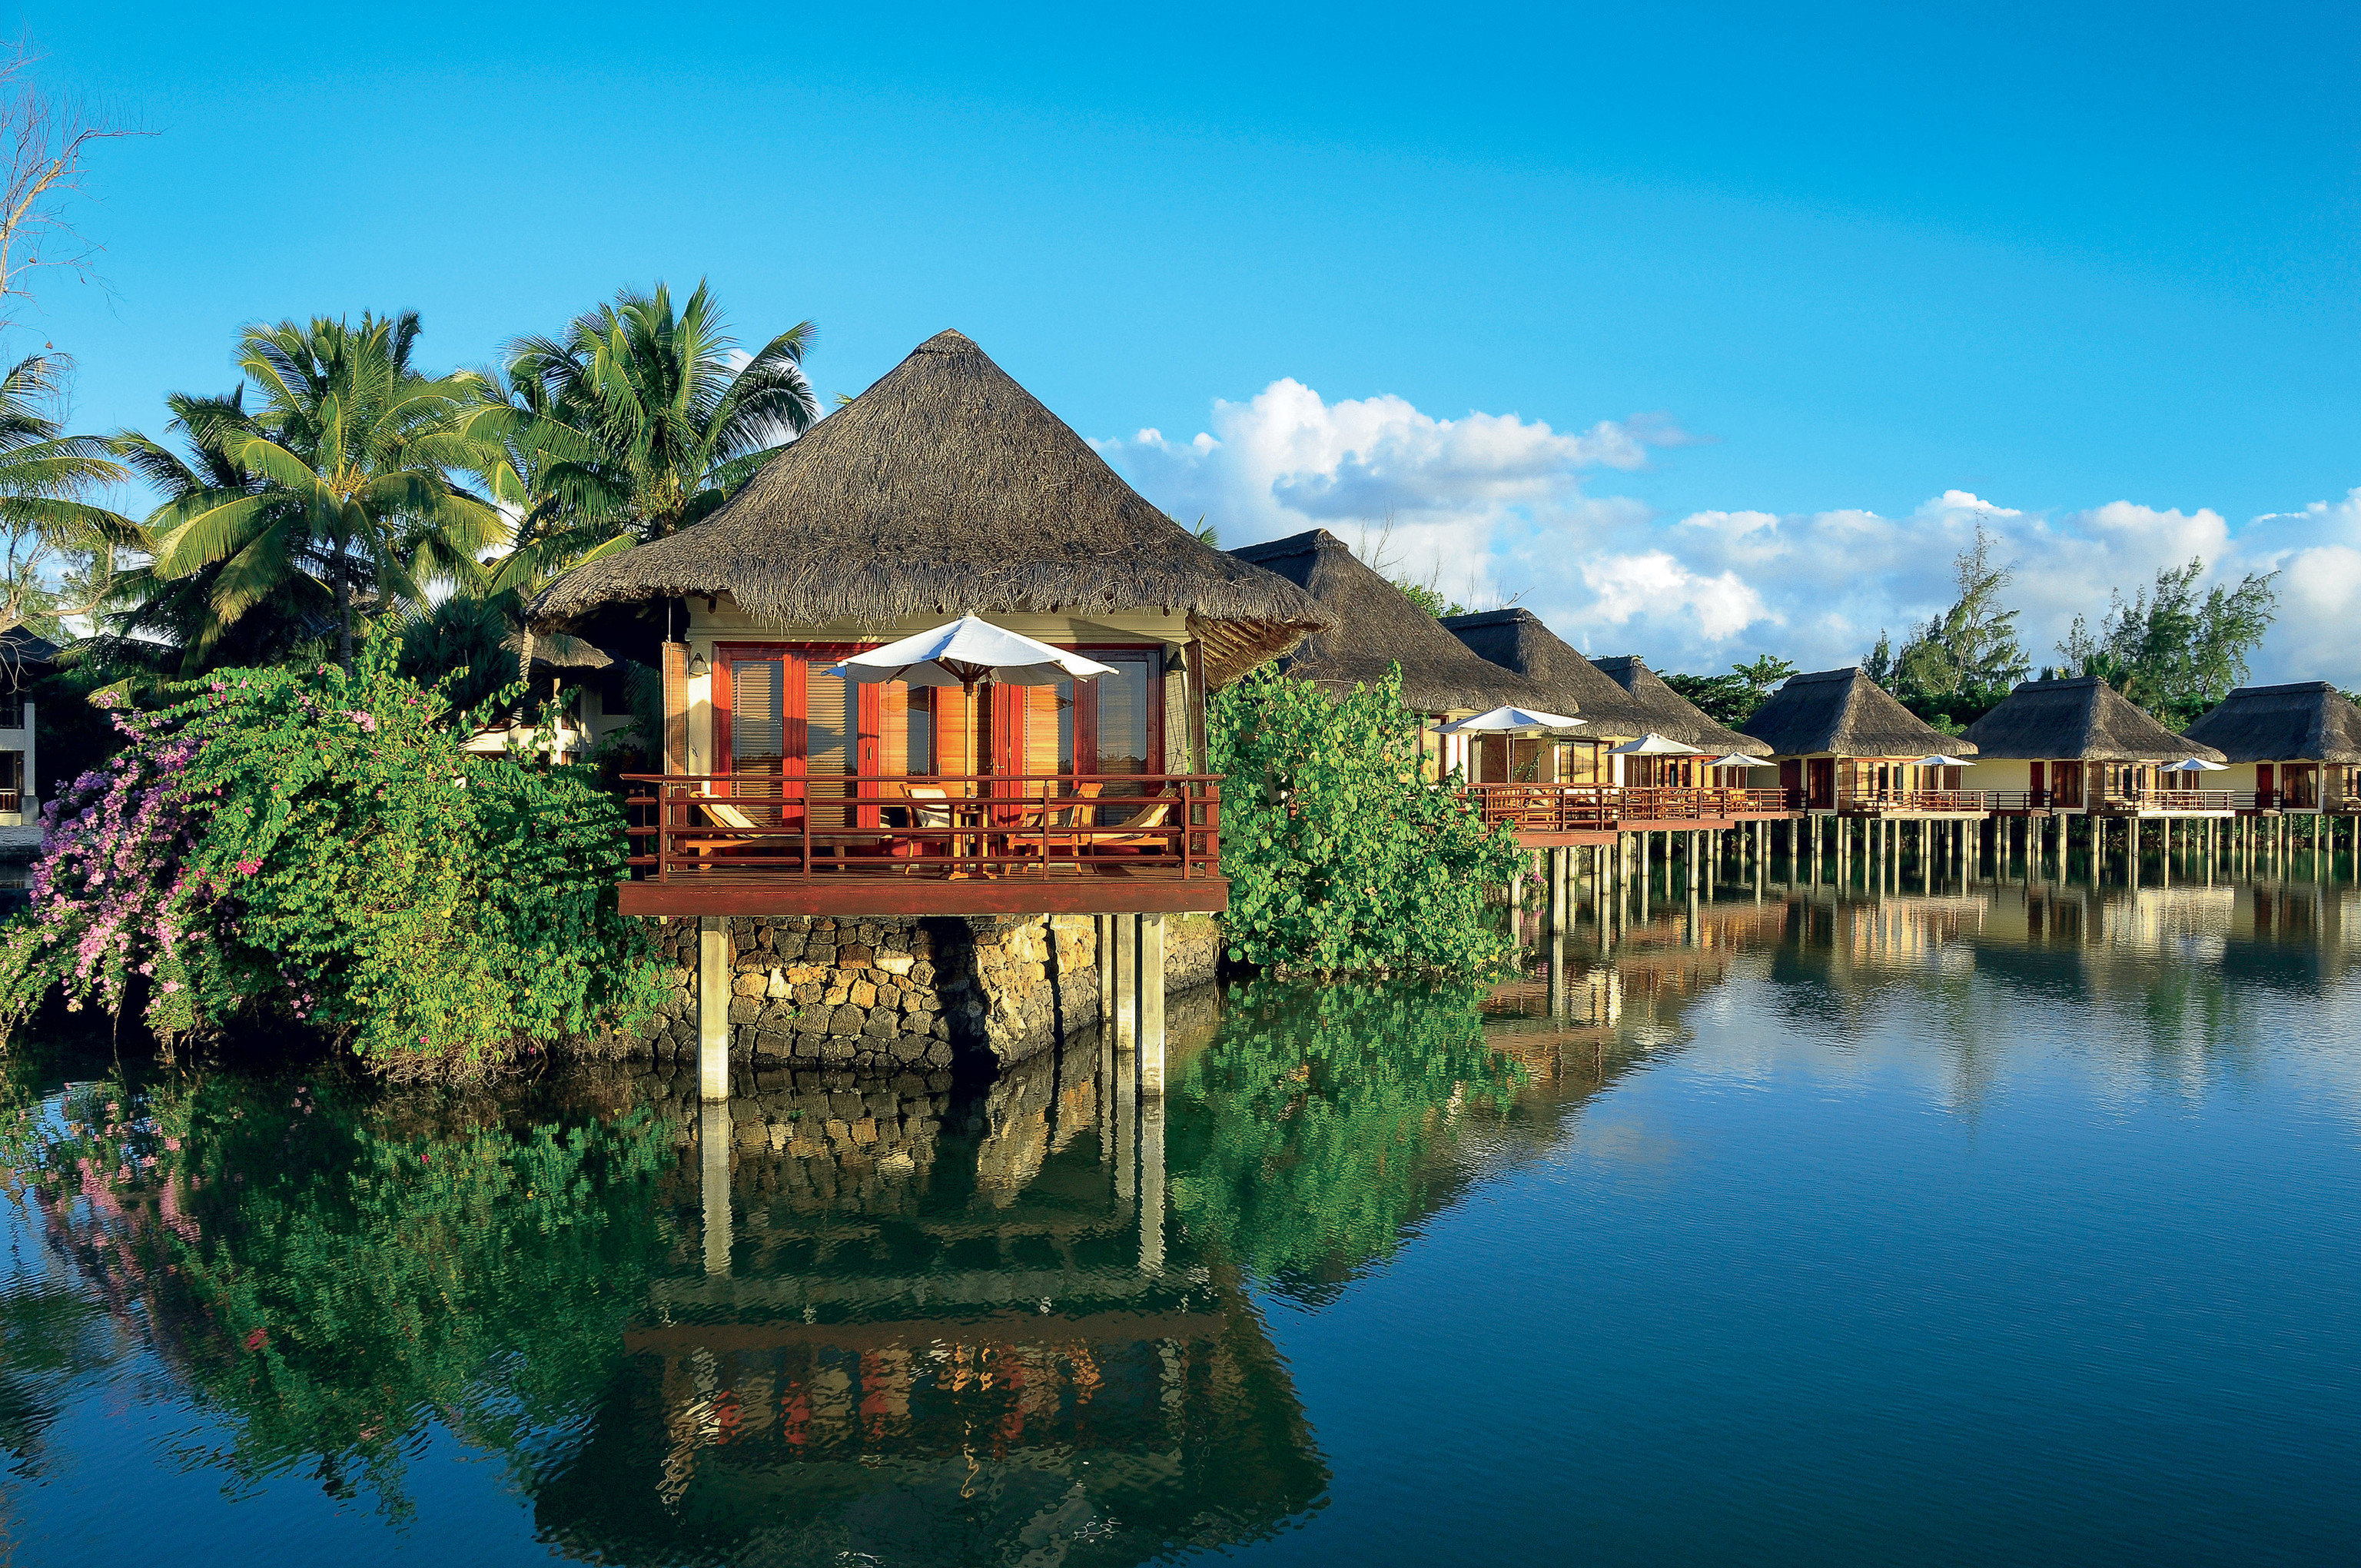 Hotels tree sky outdoor water reflection estate house Resort vacation tourism Lake surrounded Village wood